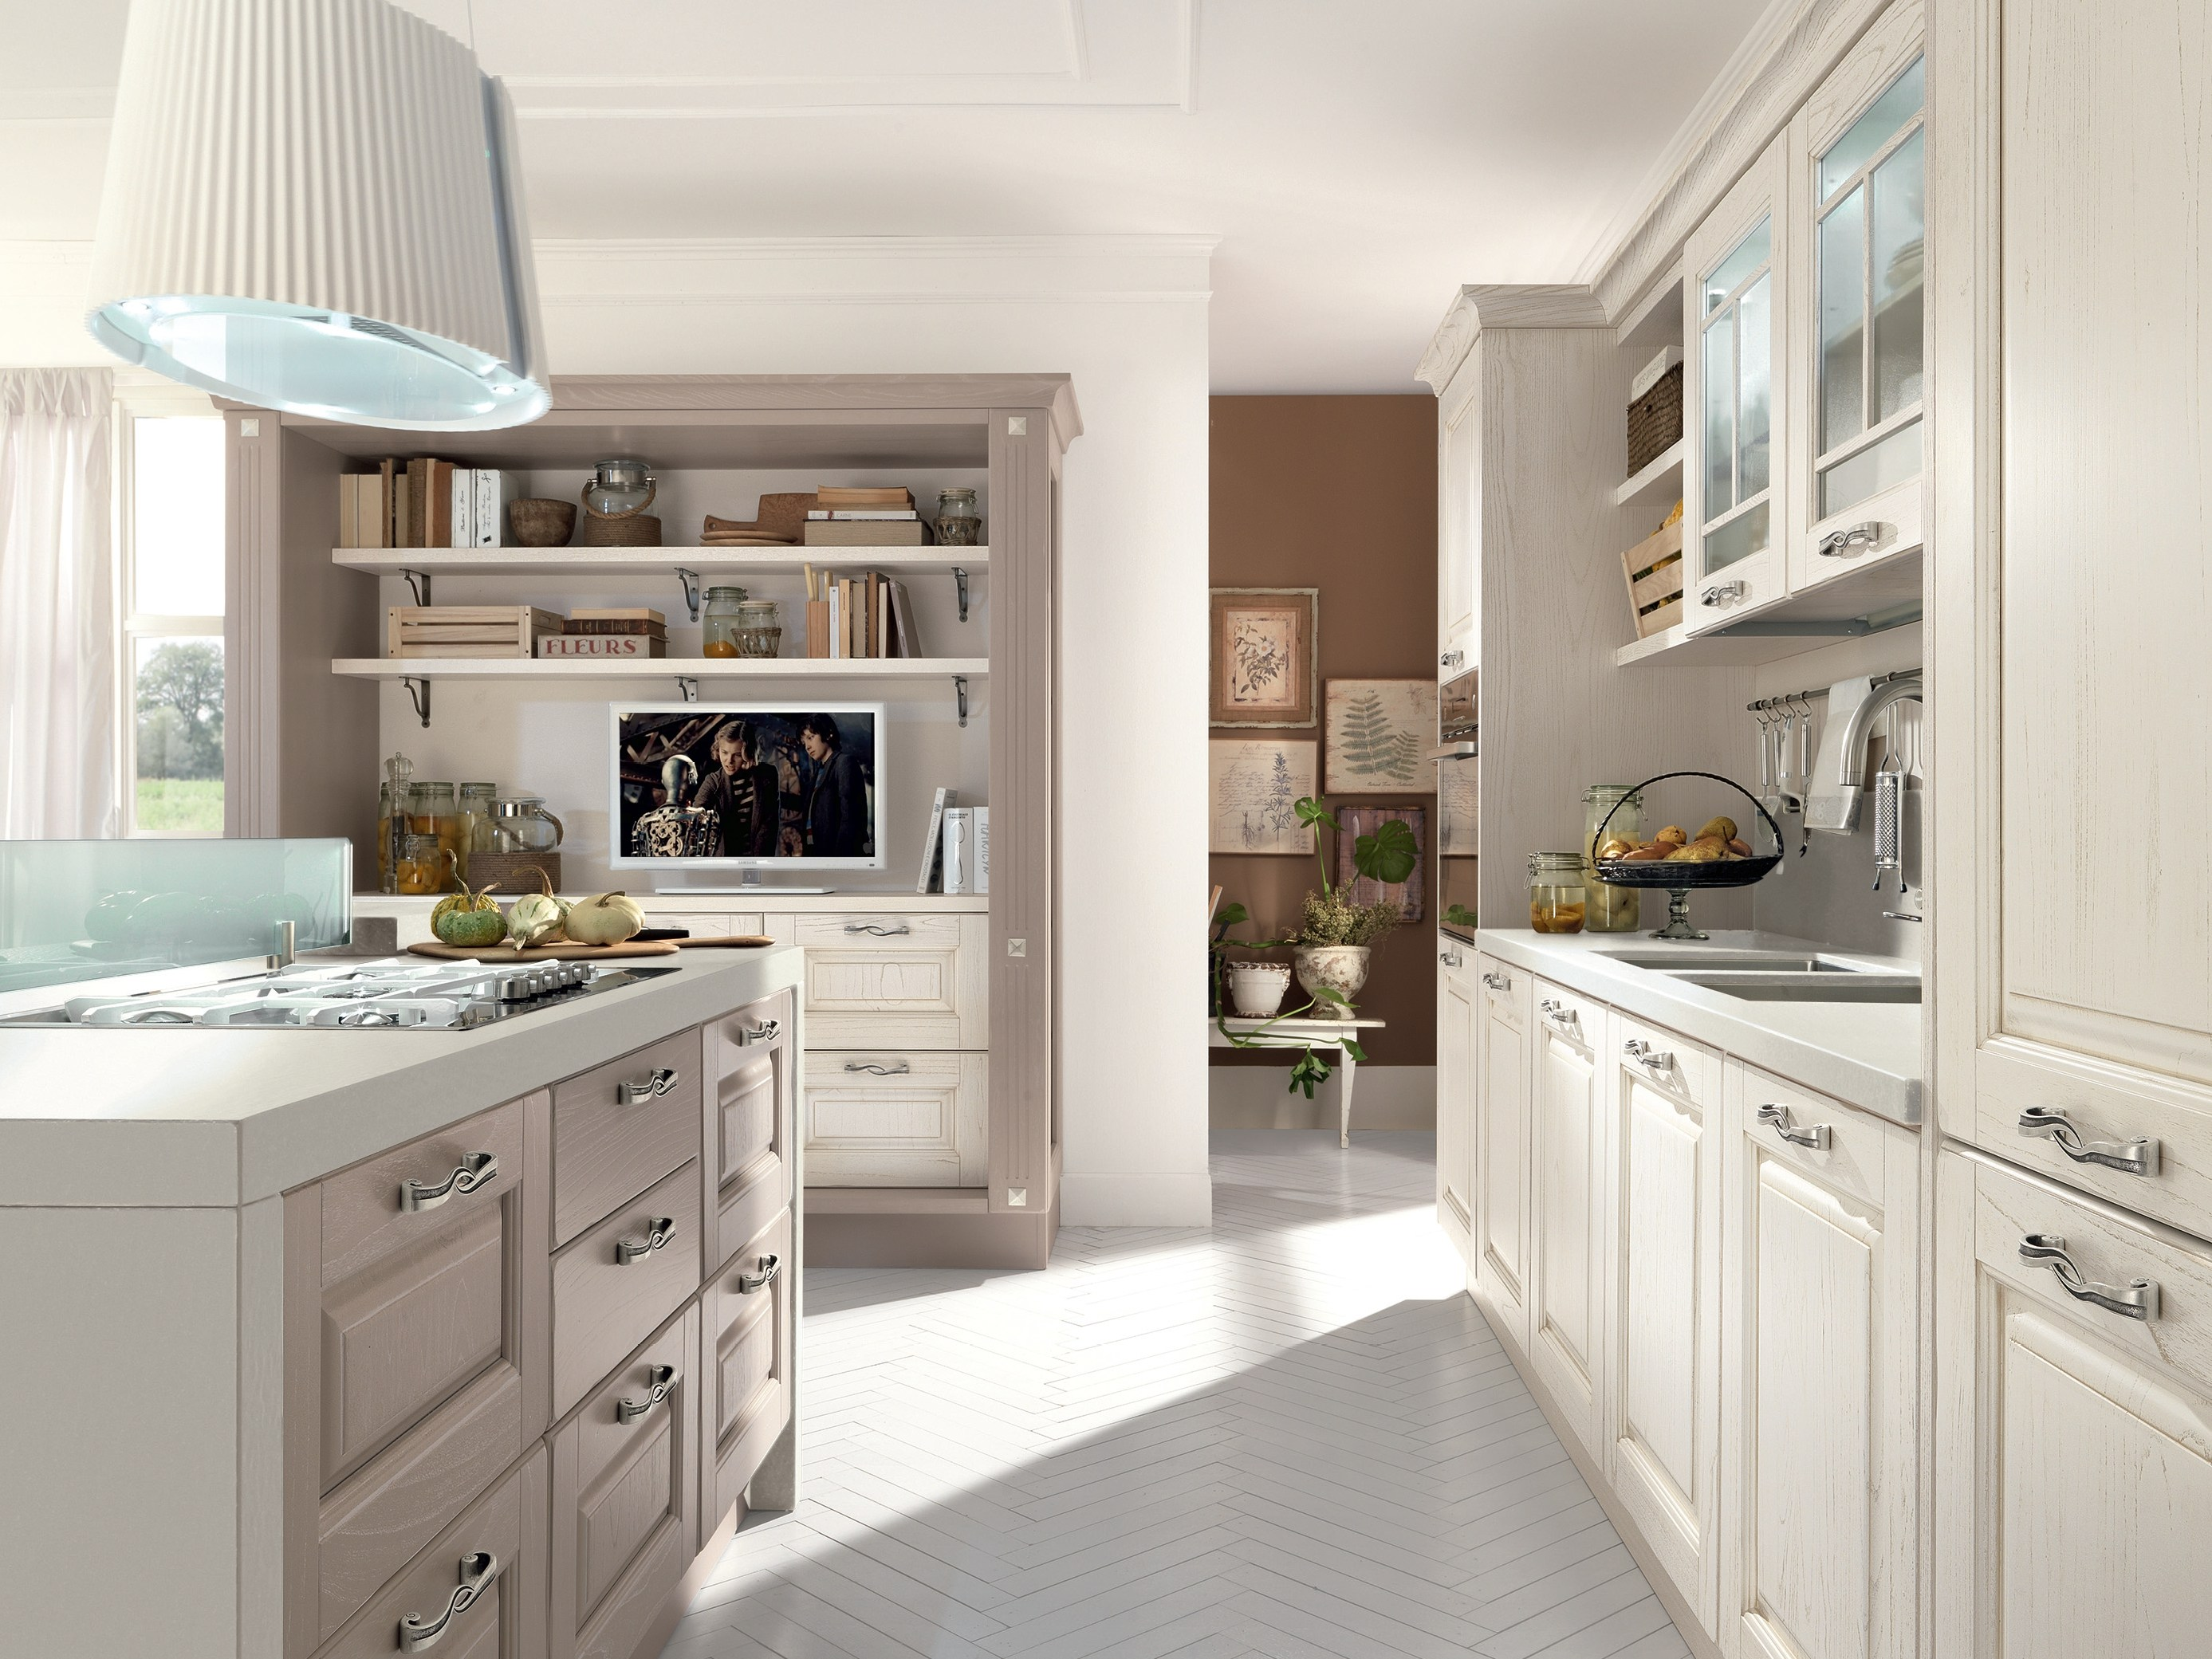 laura | kitchen by cucine lube - Cucina Laura Lube